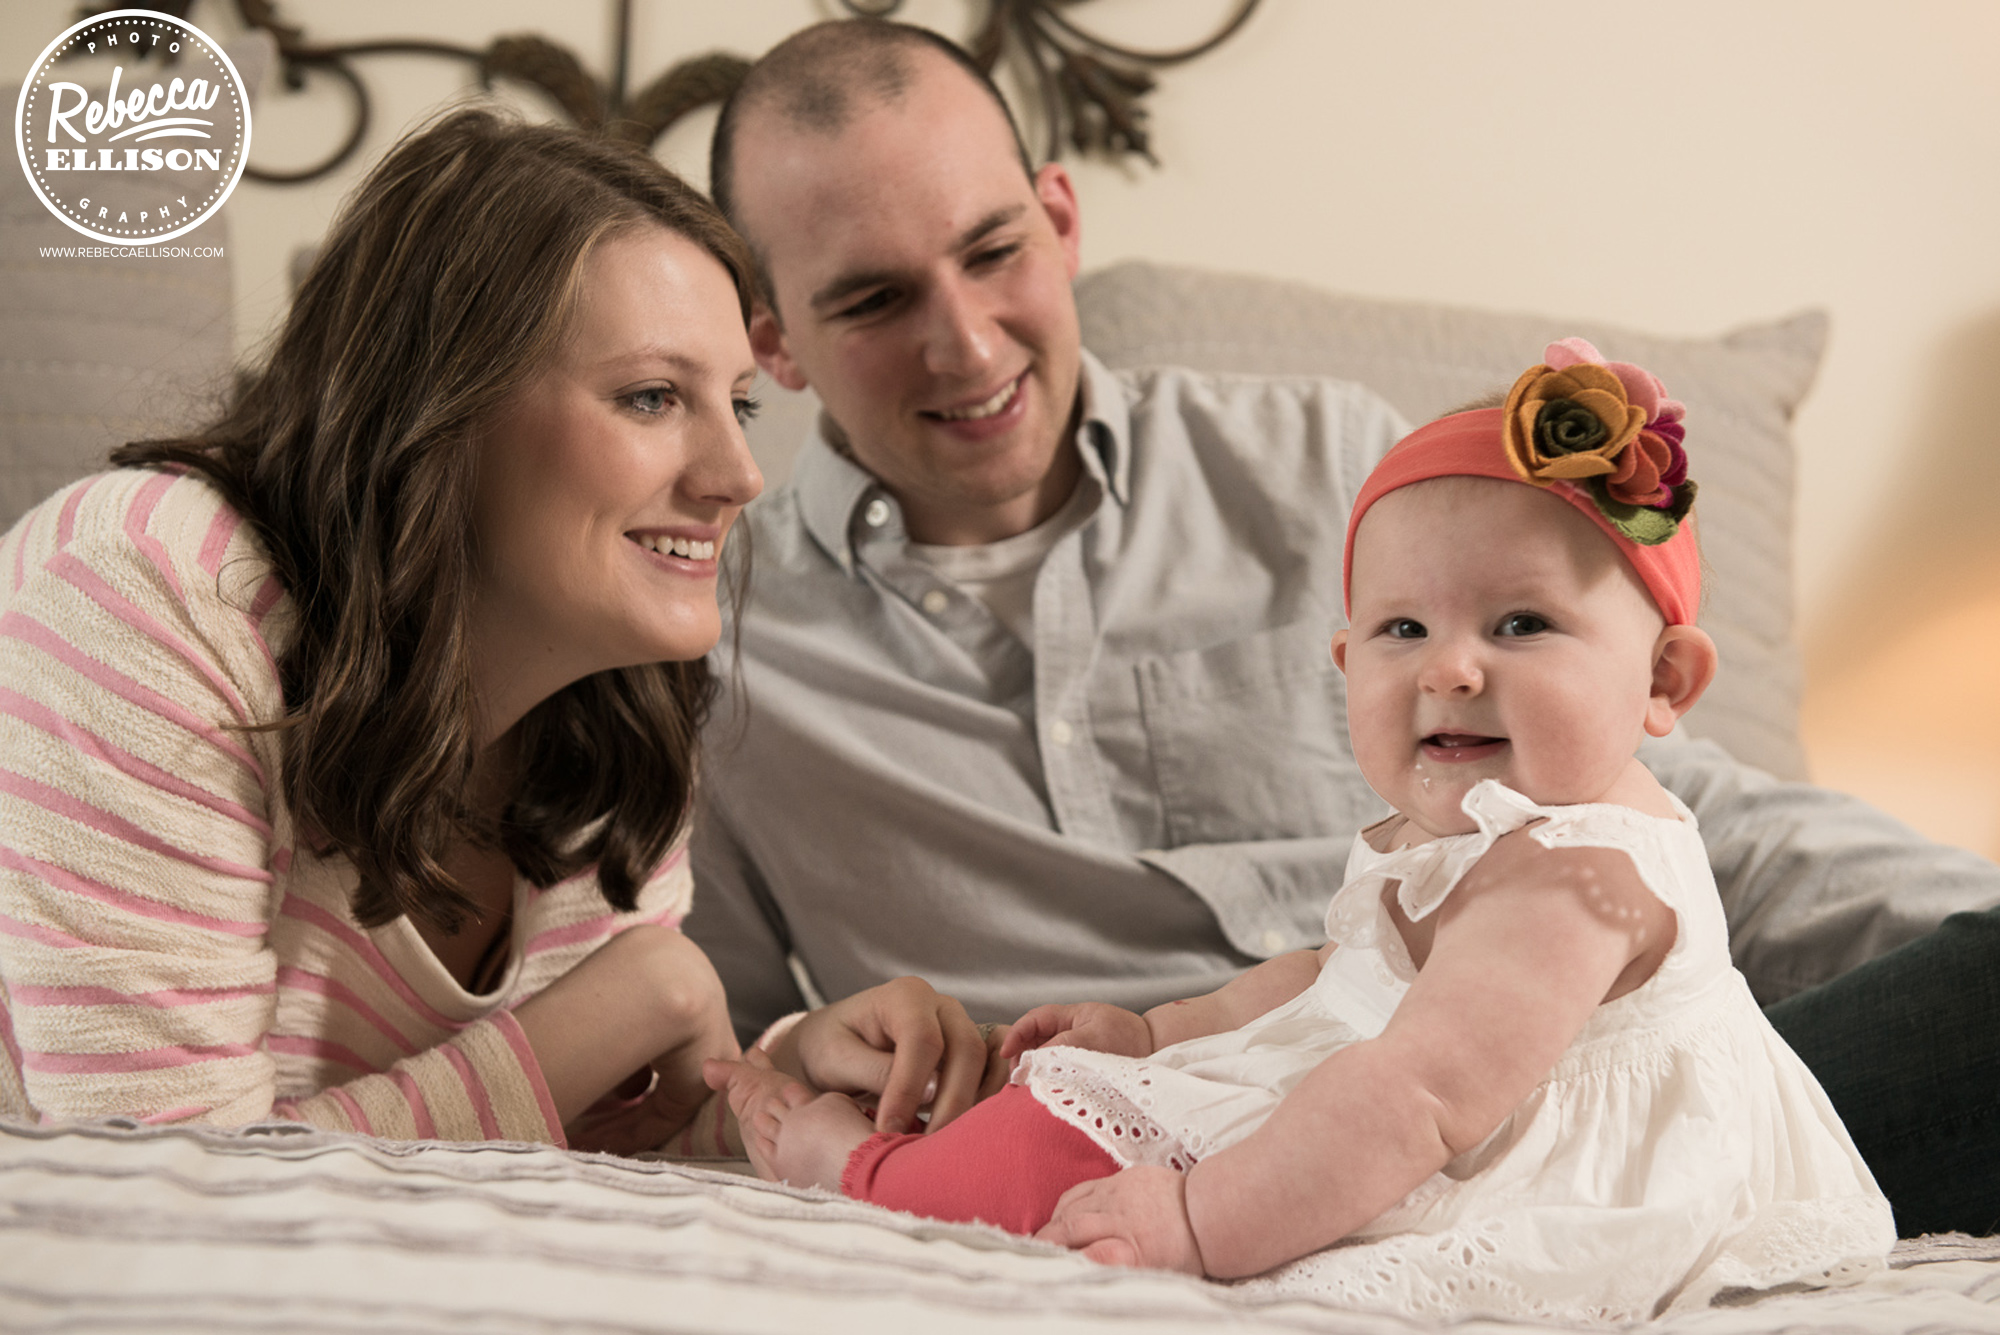 Mom and dad and baby relax during an in home portrait session photographed by Rebecca Ellison Photography